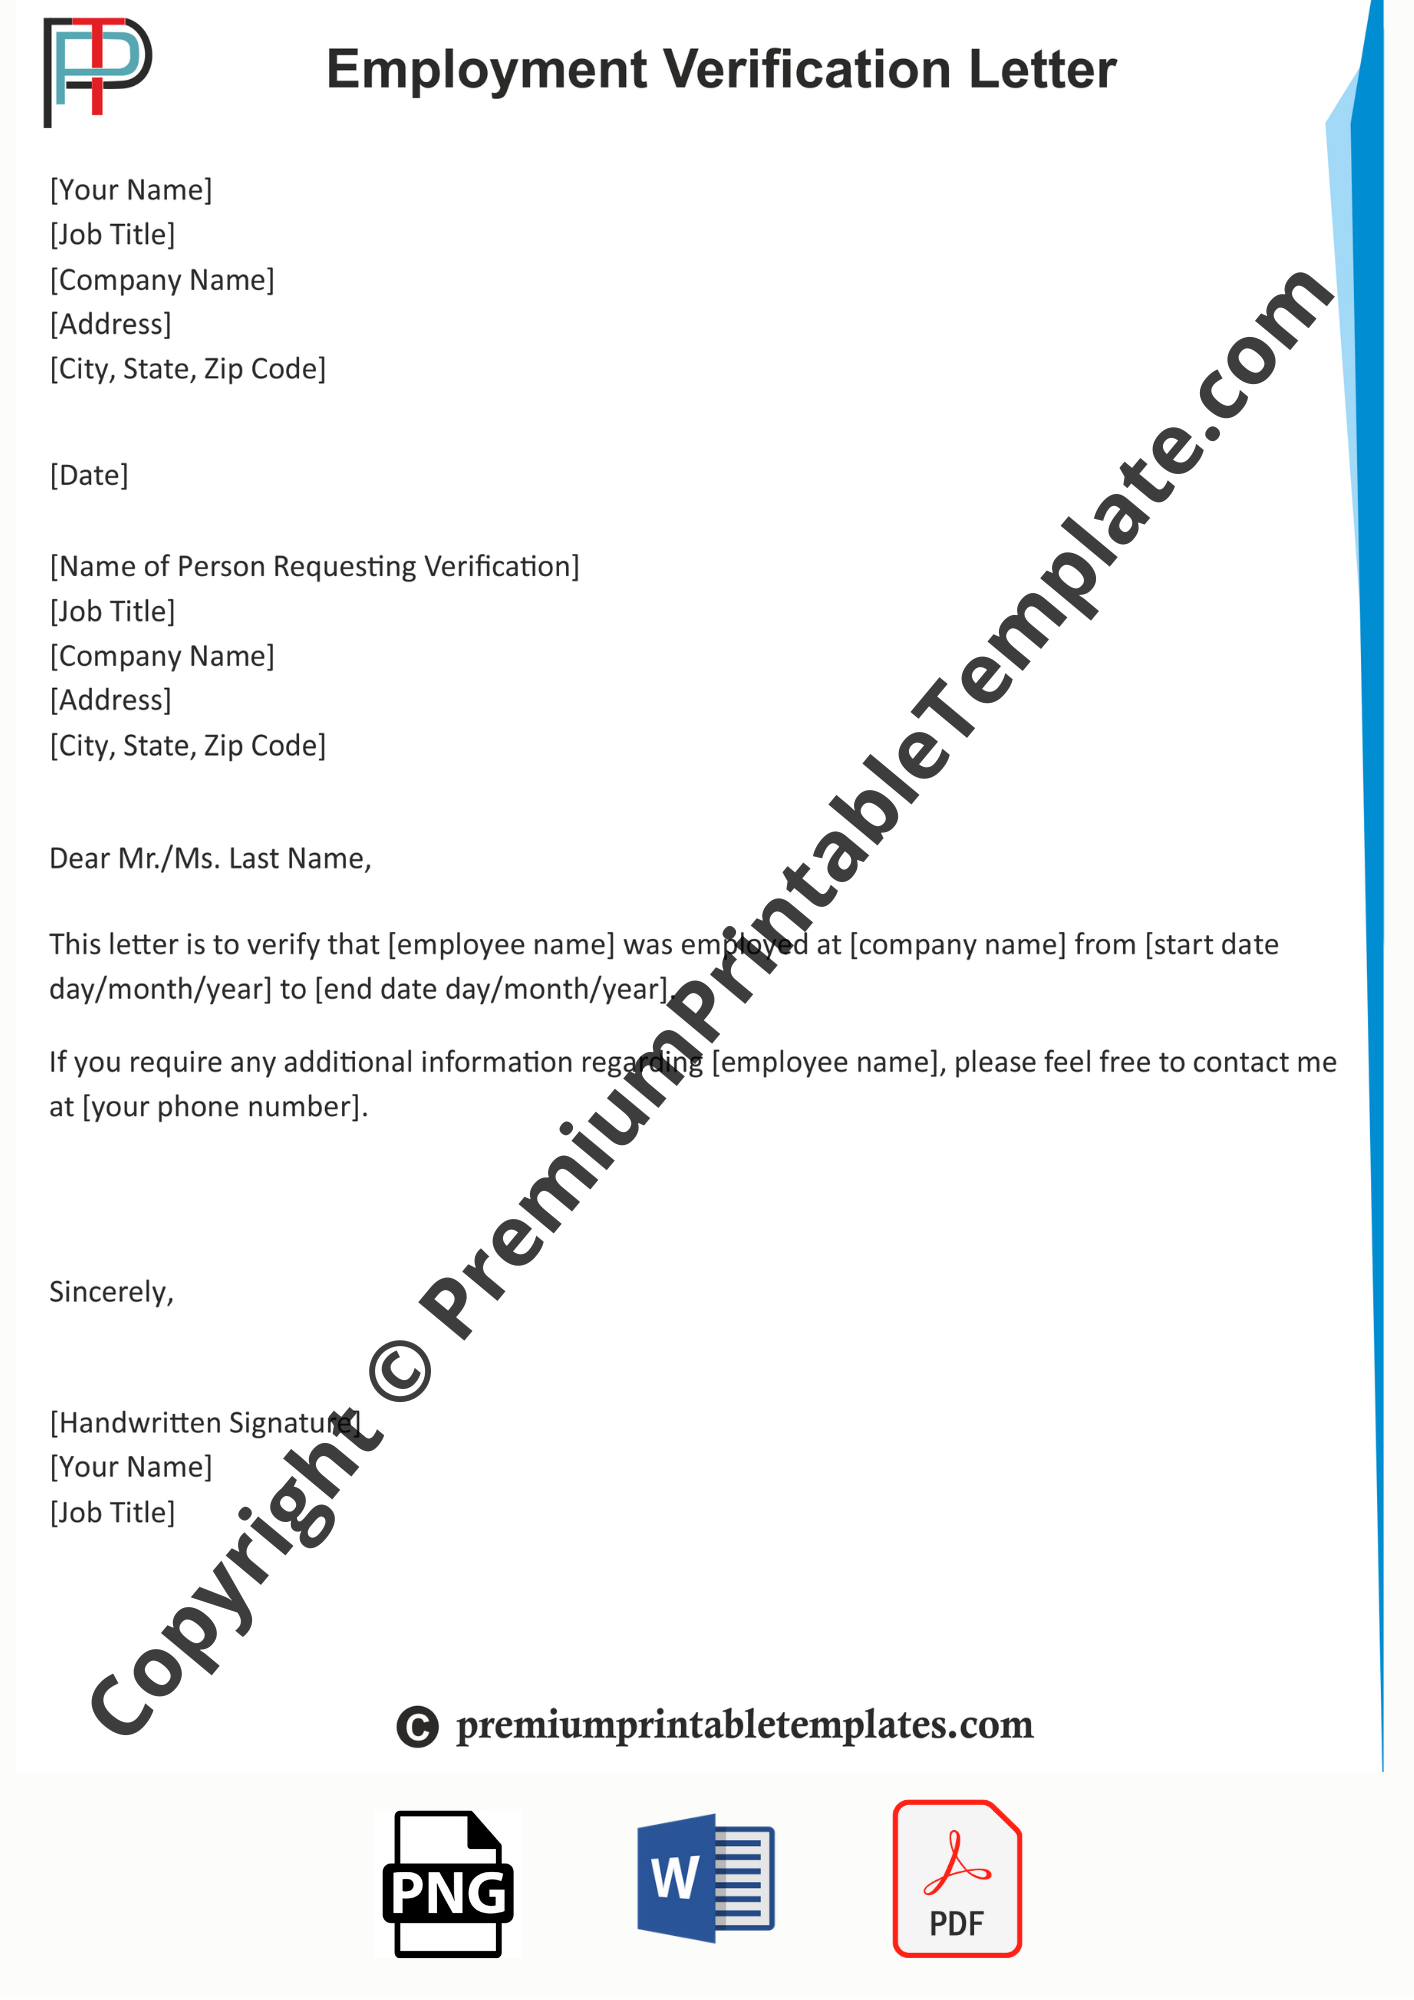 Letter Of Employment Verification Template from premiumprintabletemplates.com